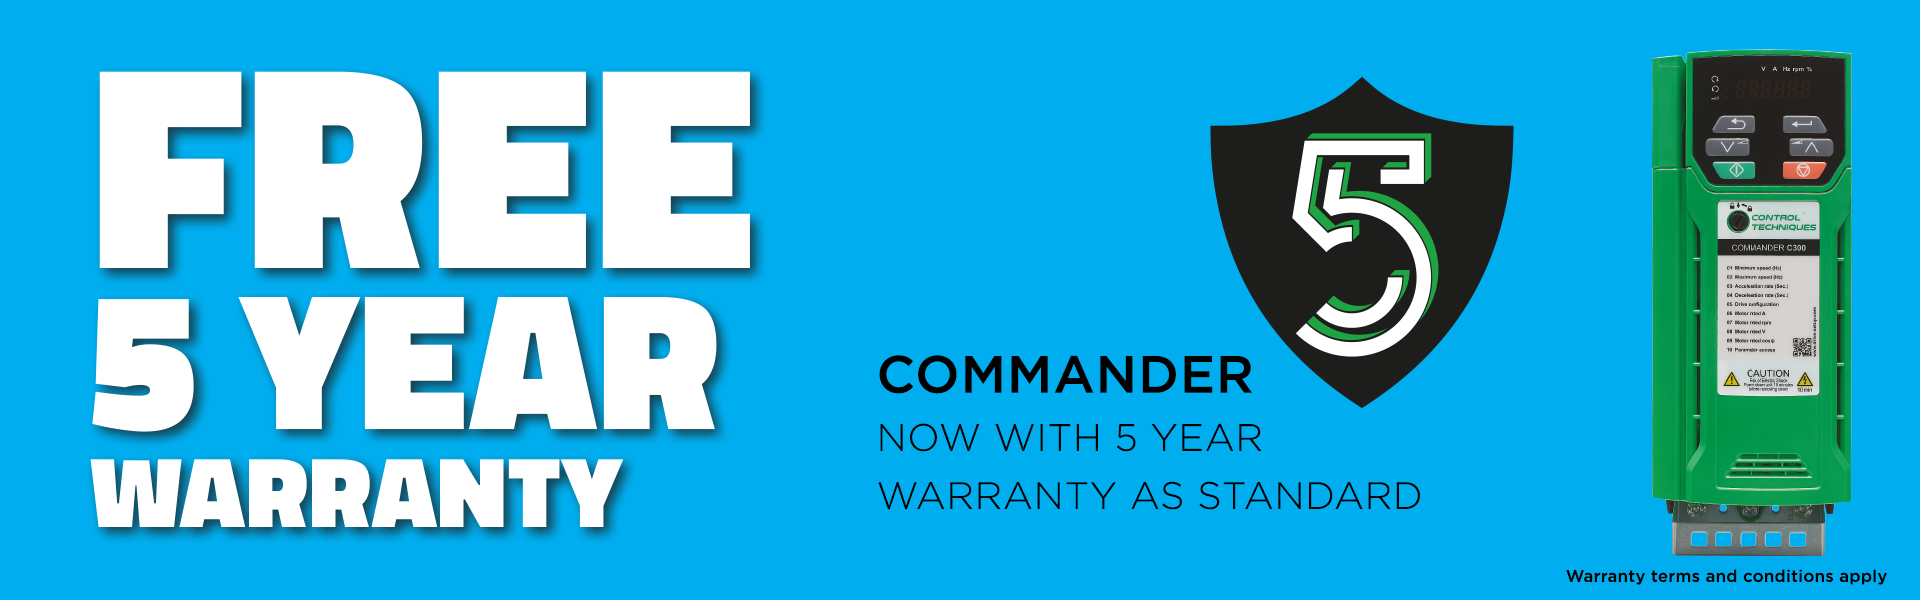 commander-c-vfd-drives-5-year-warranty